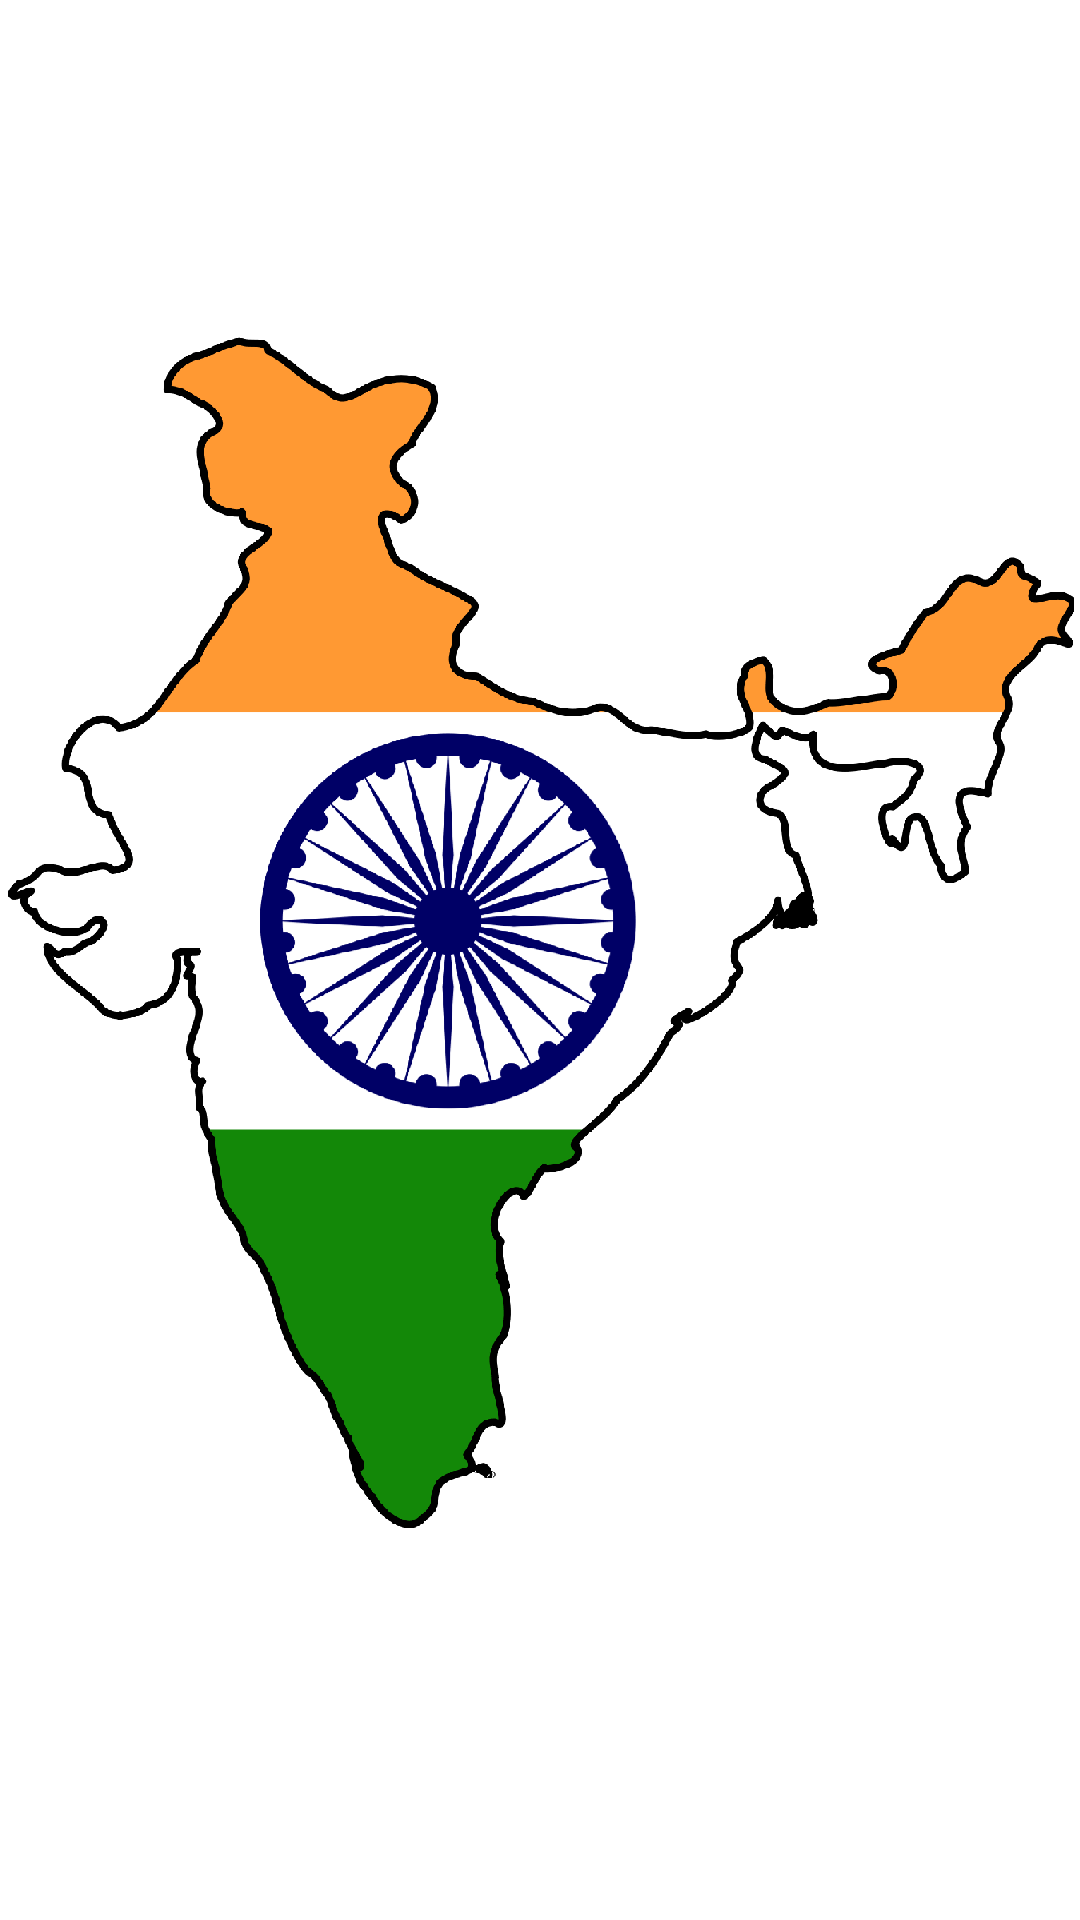 India Flag for Mobile Phone Wallpaper 4 of 17 – Indian Map and Flag ...